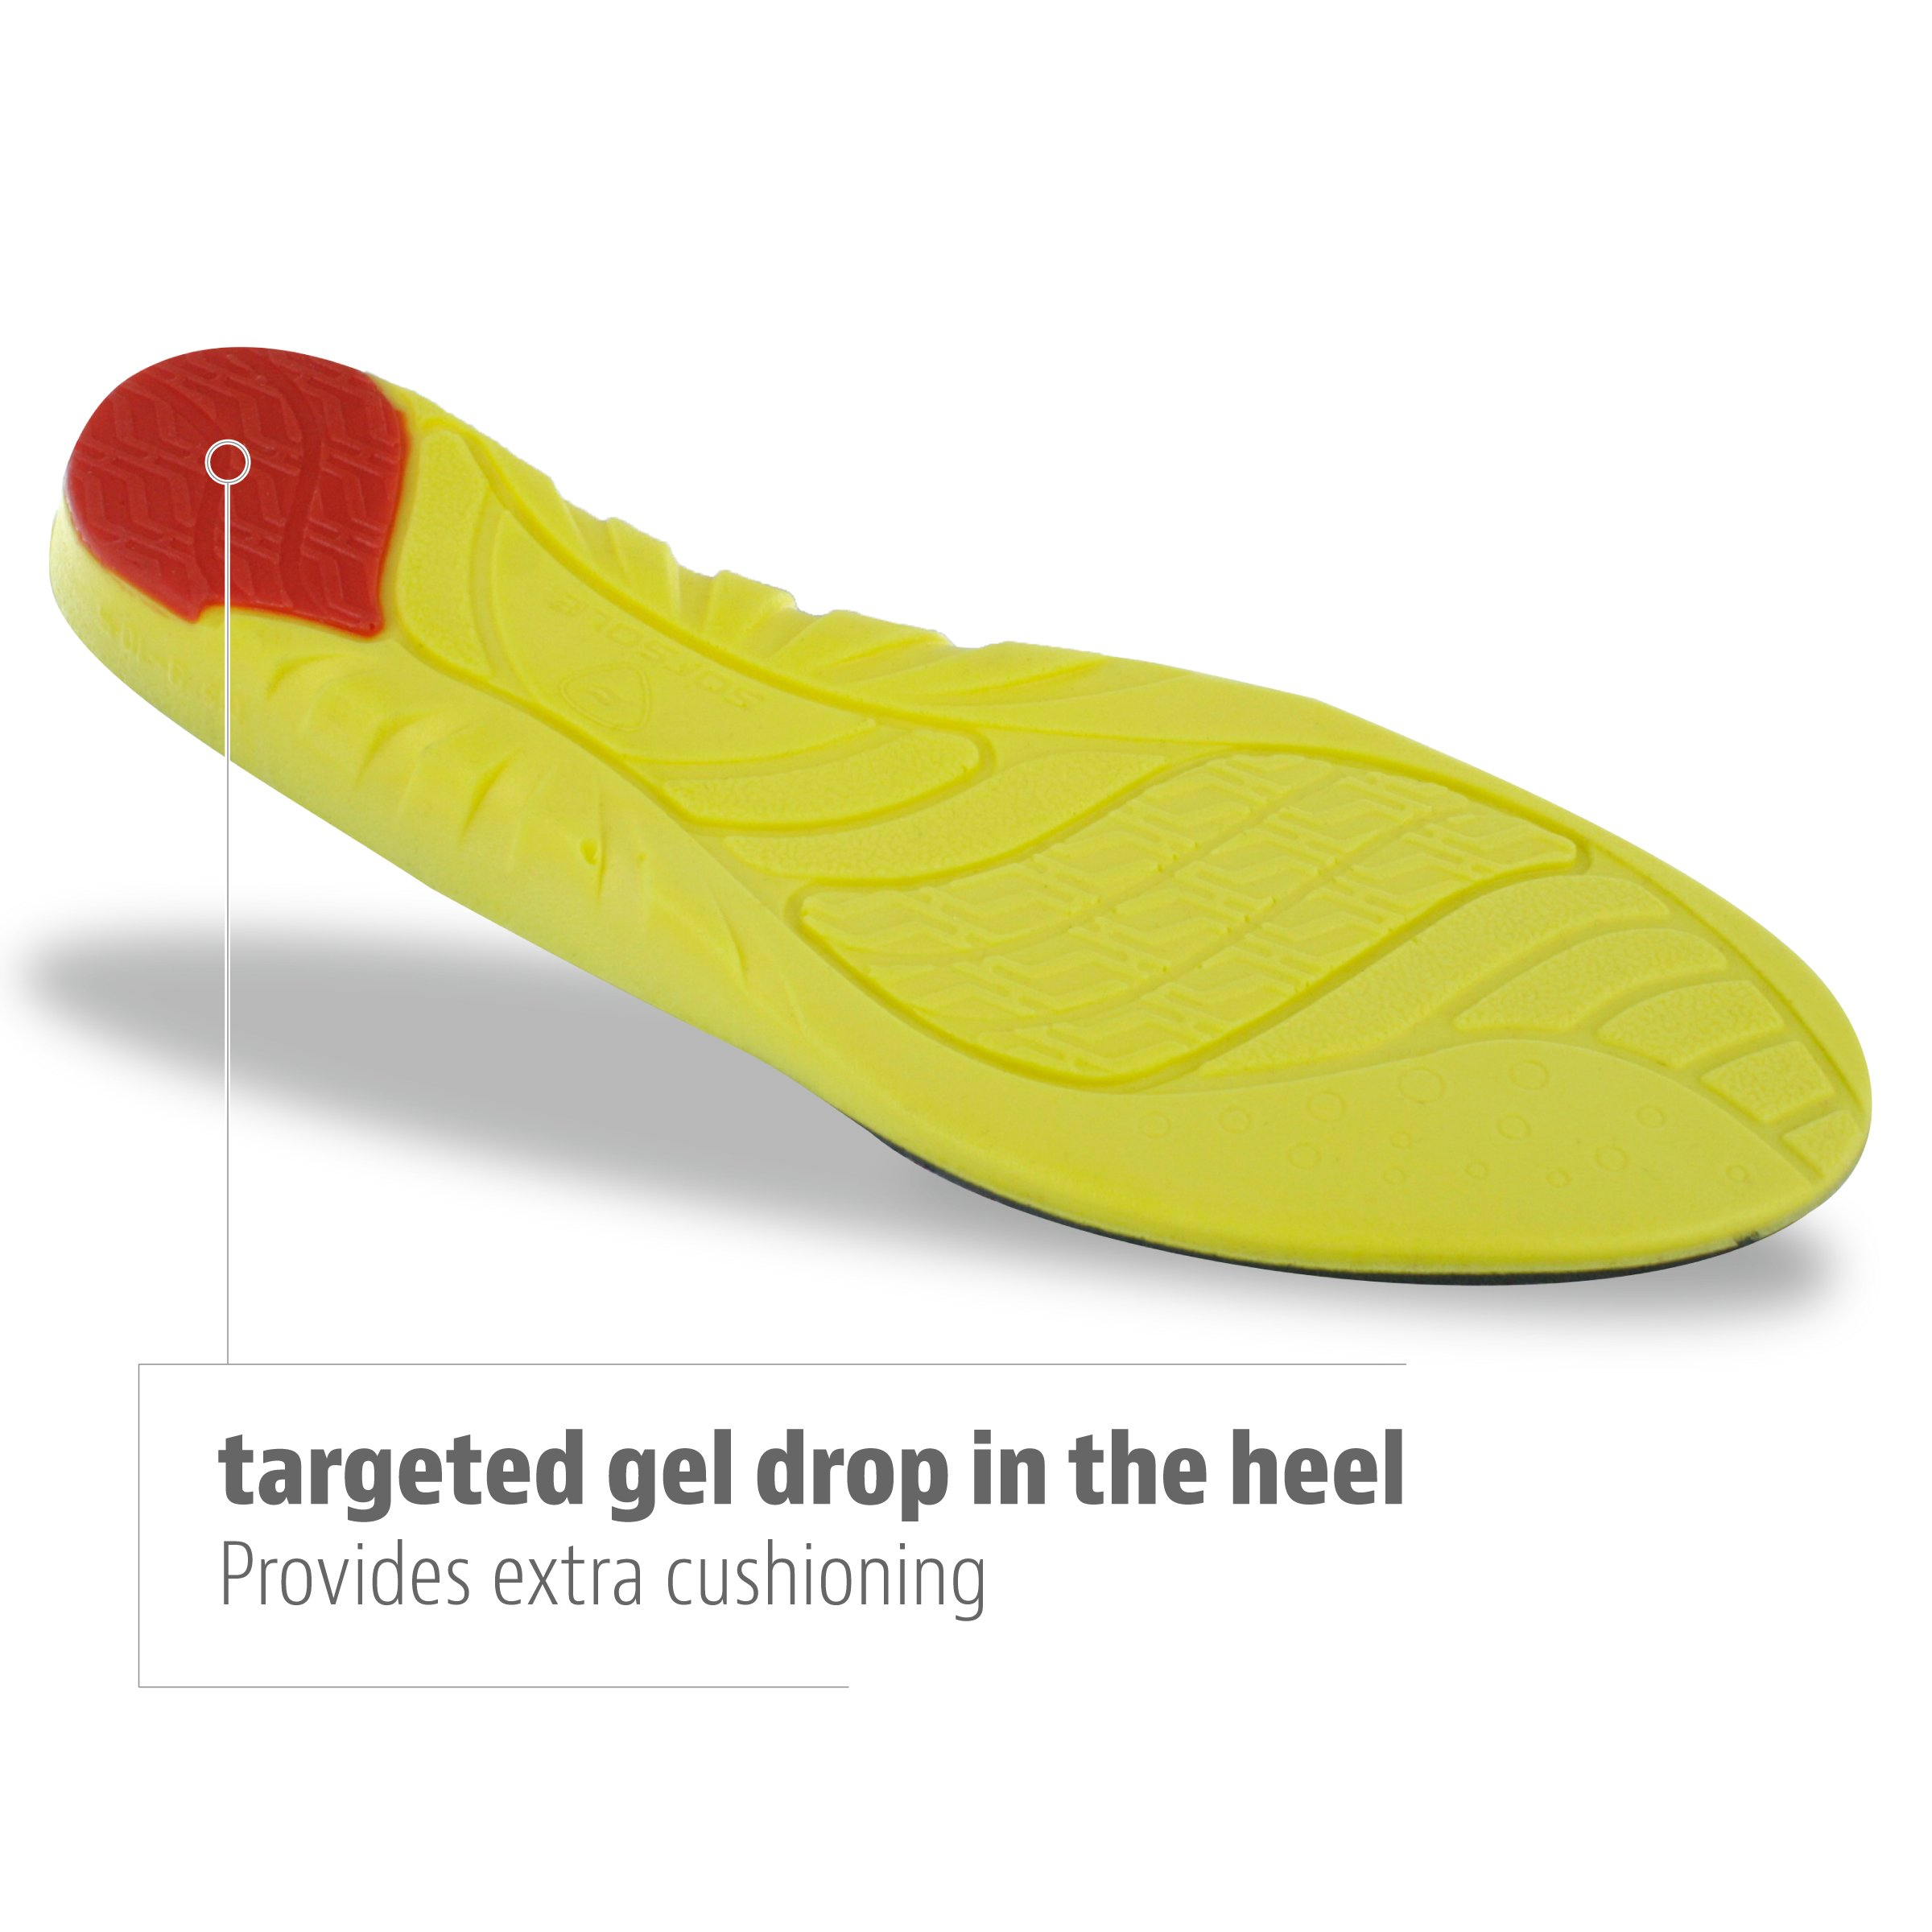 Sof Sole Men's Arch Full Length Comfort High Arch Shoe Insole, Men's Size 9-10.5 by Sof Sole (Image #3)